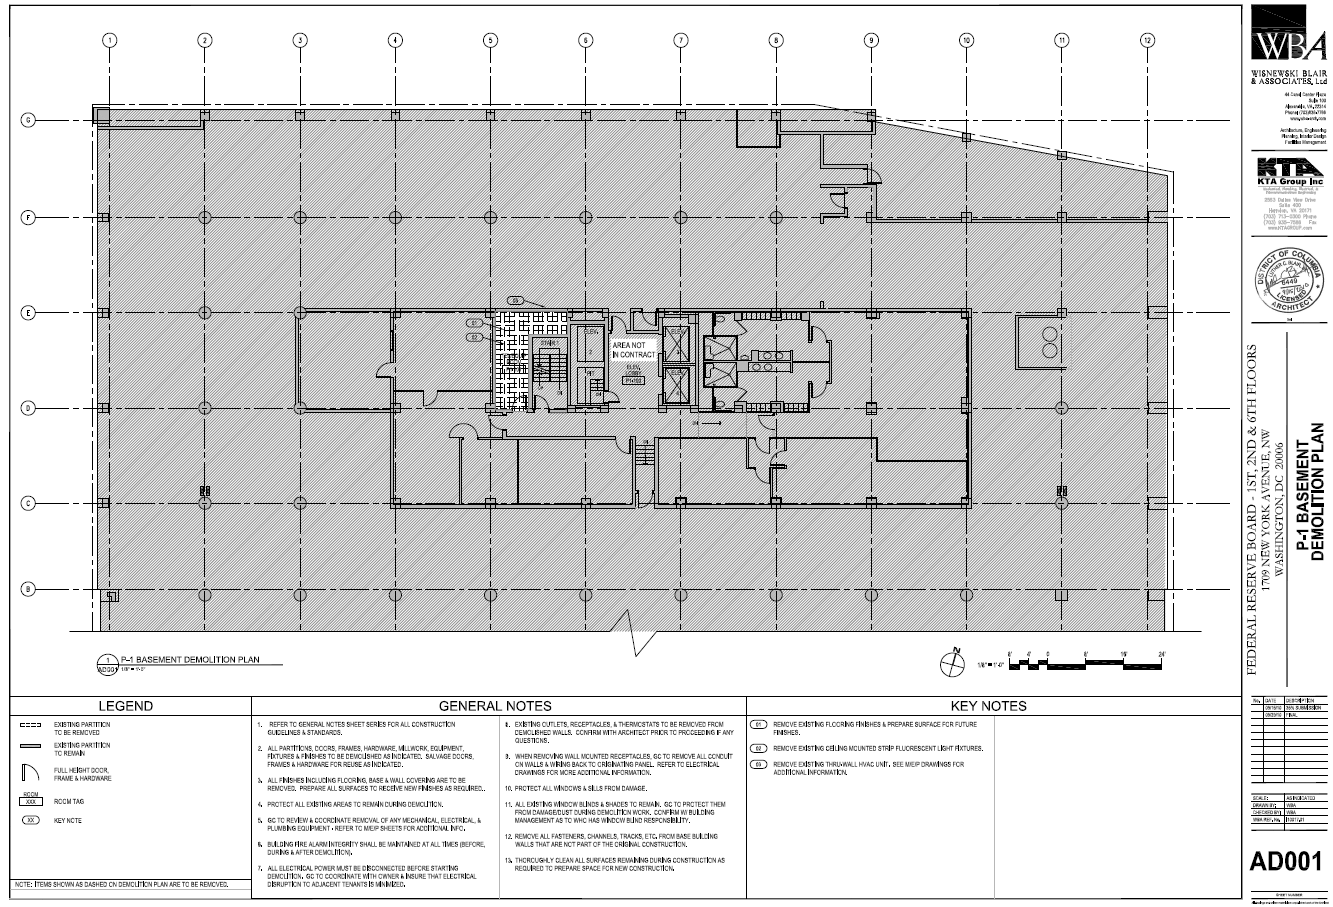 federal reserve board of governors new york ave building electrical plan basement #8